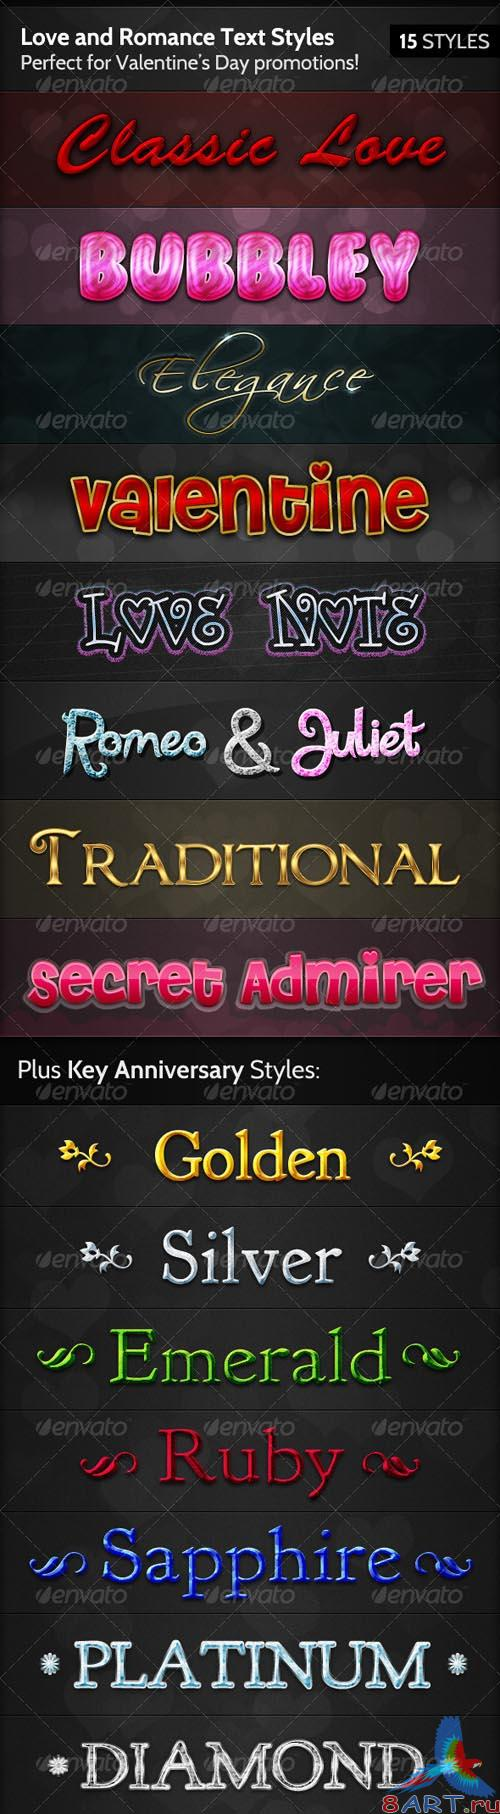 GraphicRiver Love and Romance Text Styles - REUPLOAD